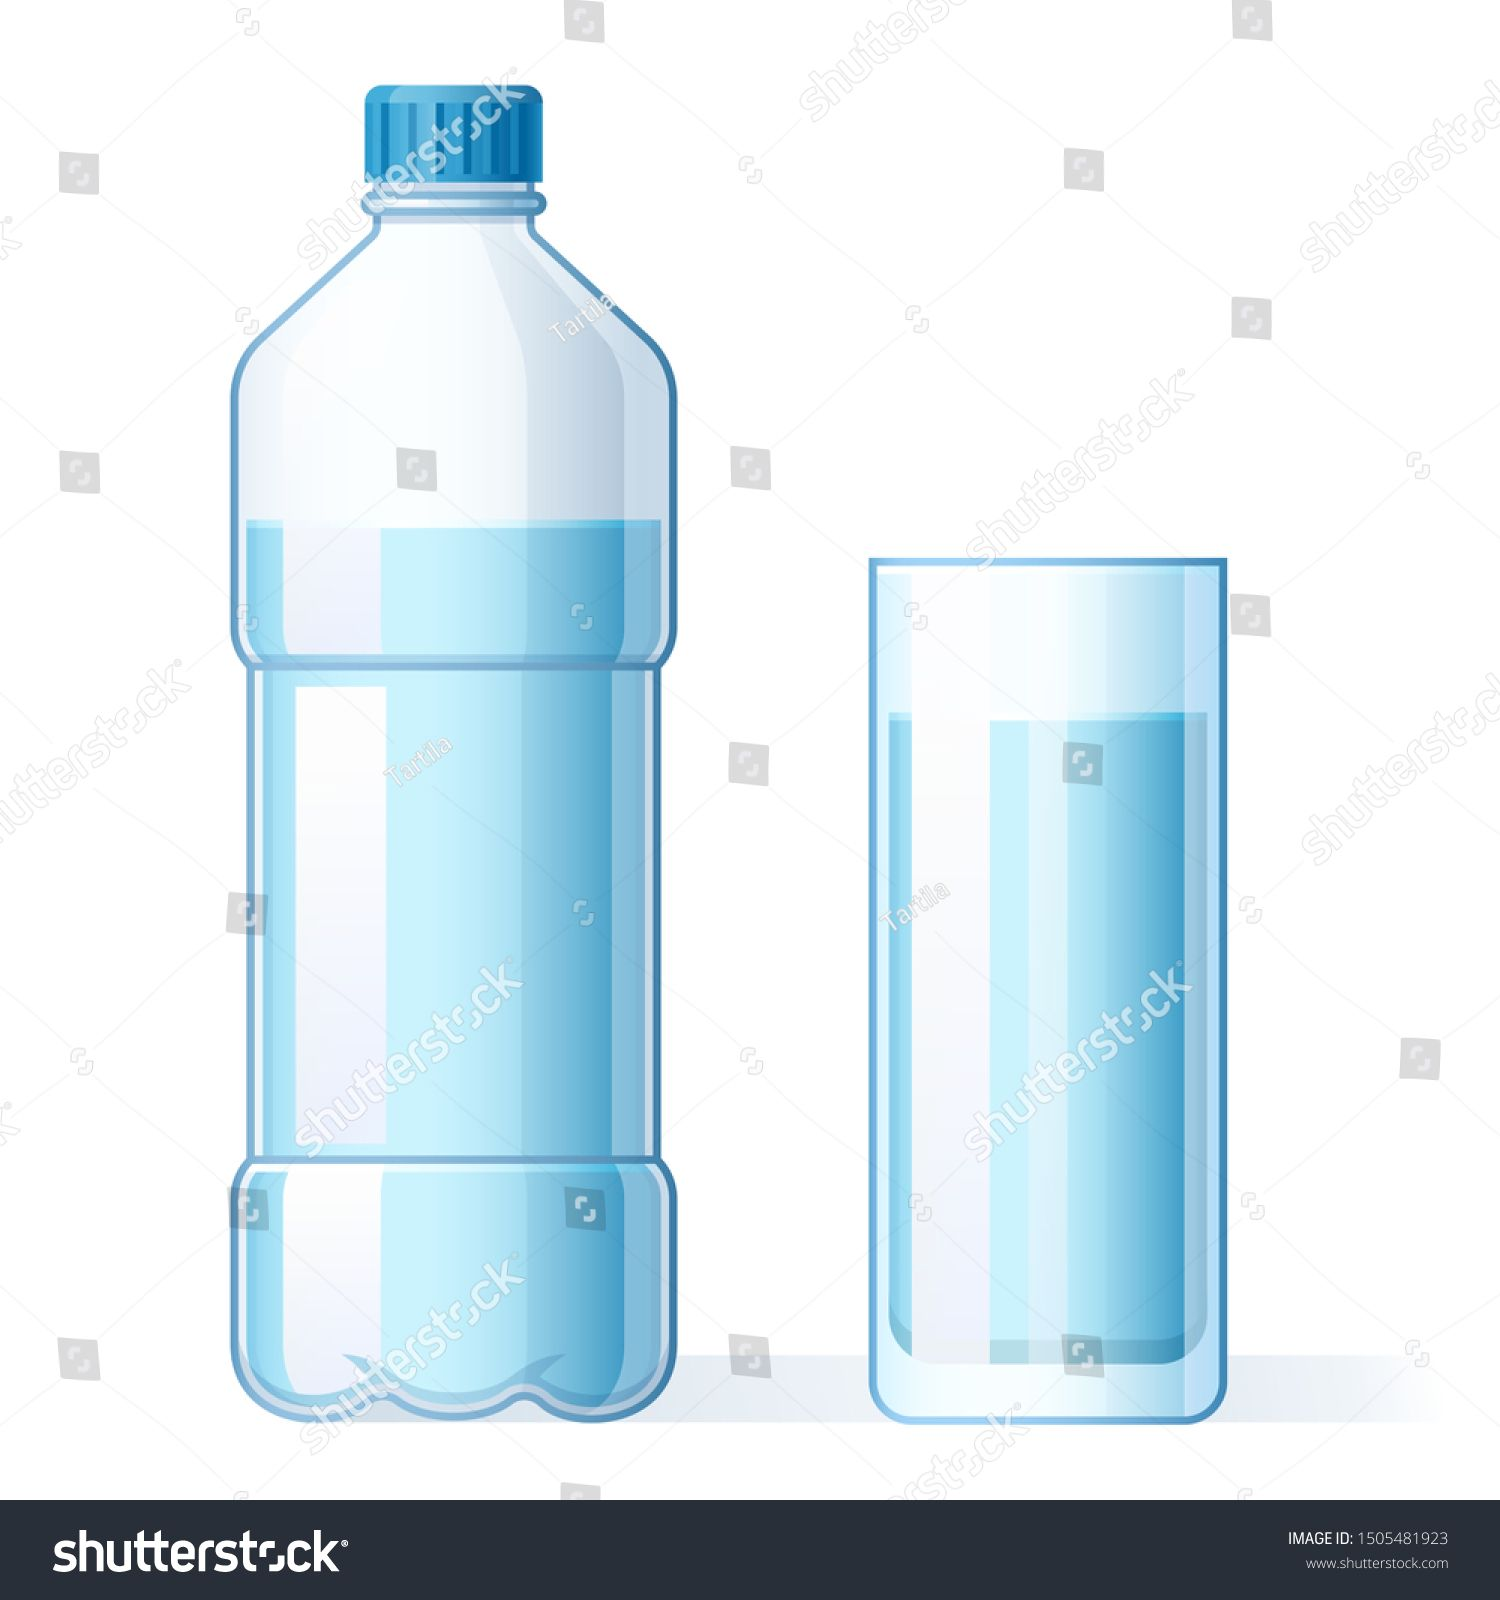 Glass of water and plastic bottle. Hydration, bottles for pure liquid and bottled mineral water drink. H2O aqua drink, water with drinking minerals in cup cartoon isolated vector illustration #Sponsored , #Aff, #pure#bottles#liquid#mineral